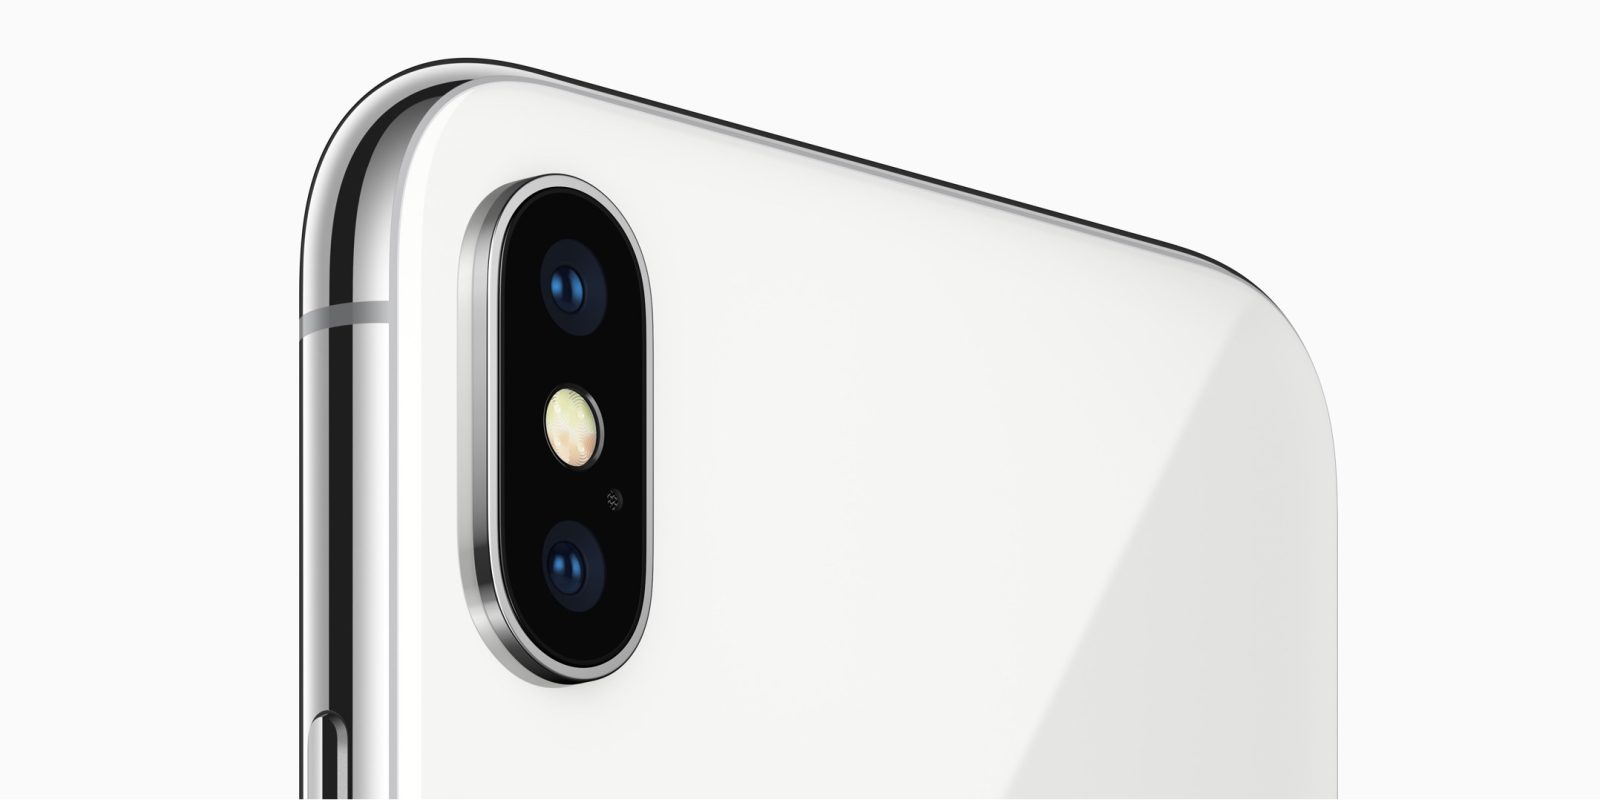 iPhone: How to customize camera settings to shoot 4K video